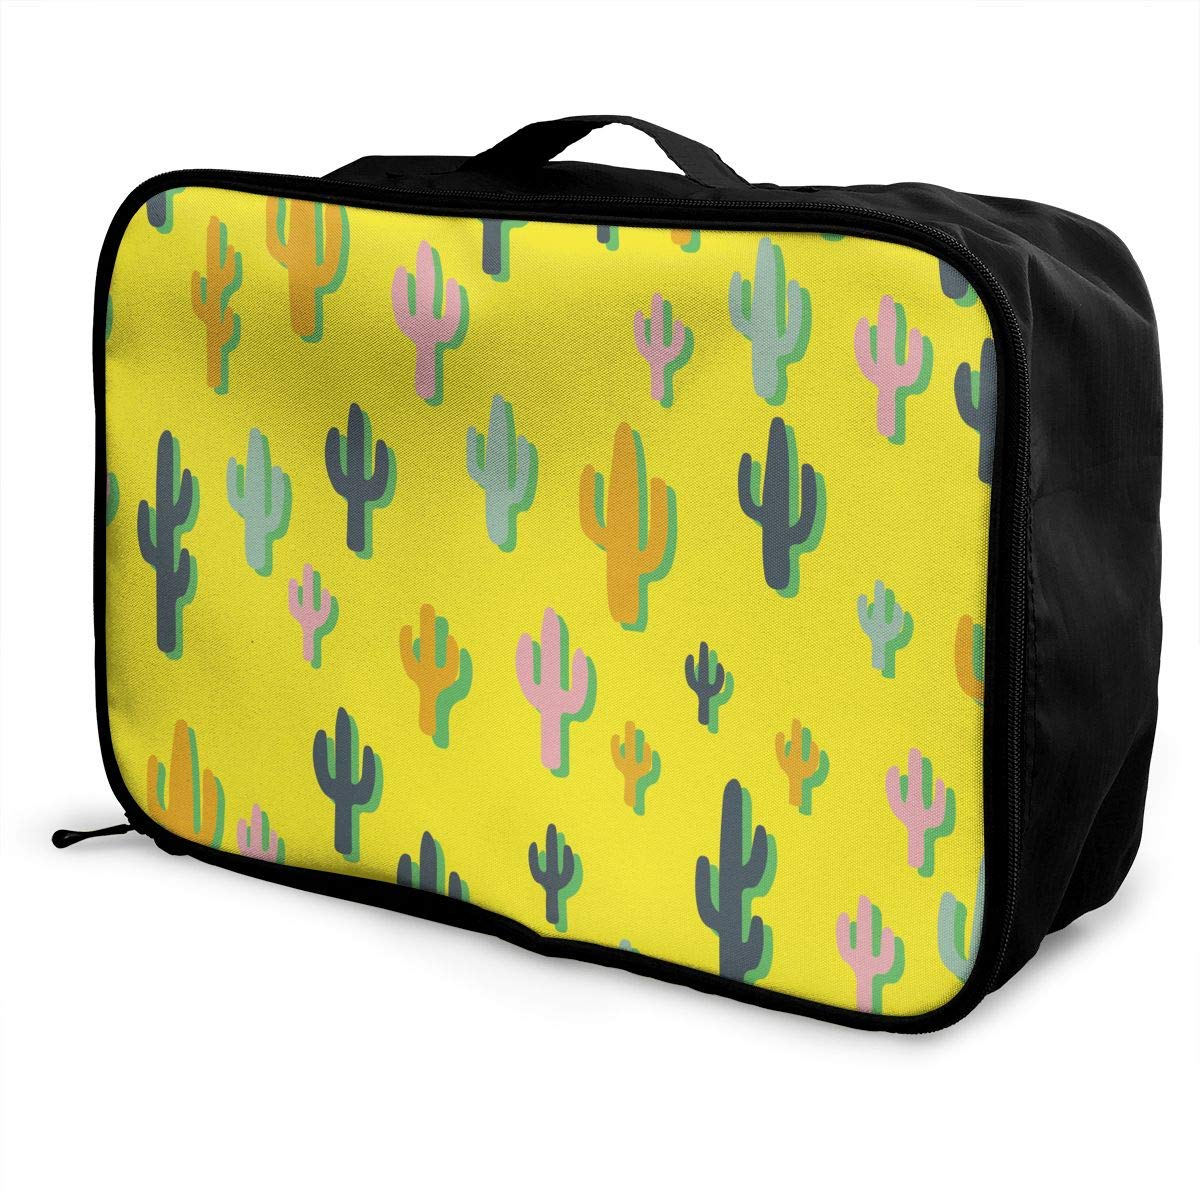 YueLJB Colorful Cactus Lightweight Large Capacity Portable Luggage Bag Travel Duffel Bag Storage Carry Luggage Duffle Tote Bag